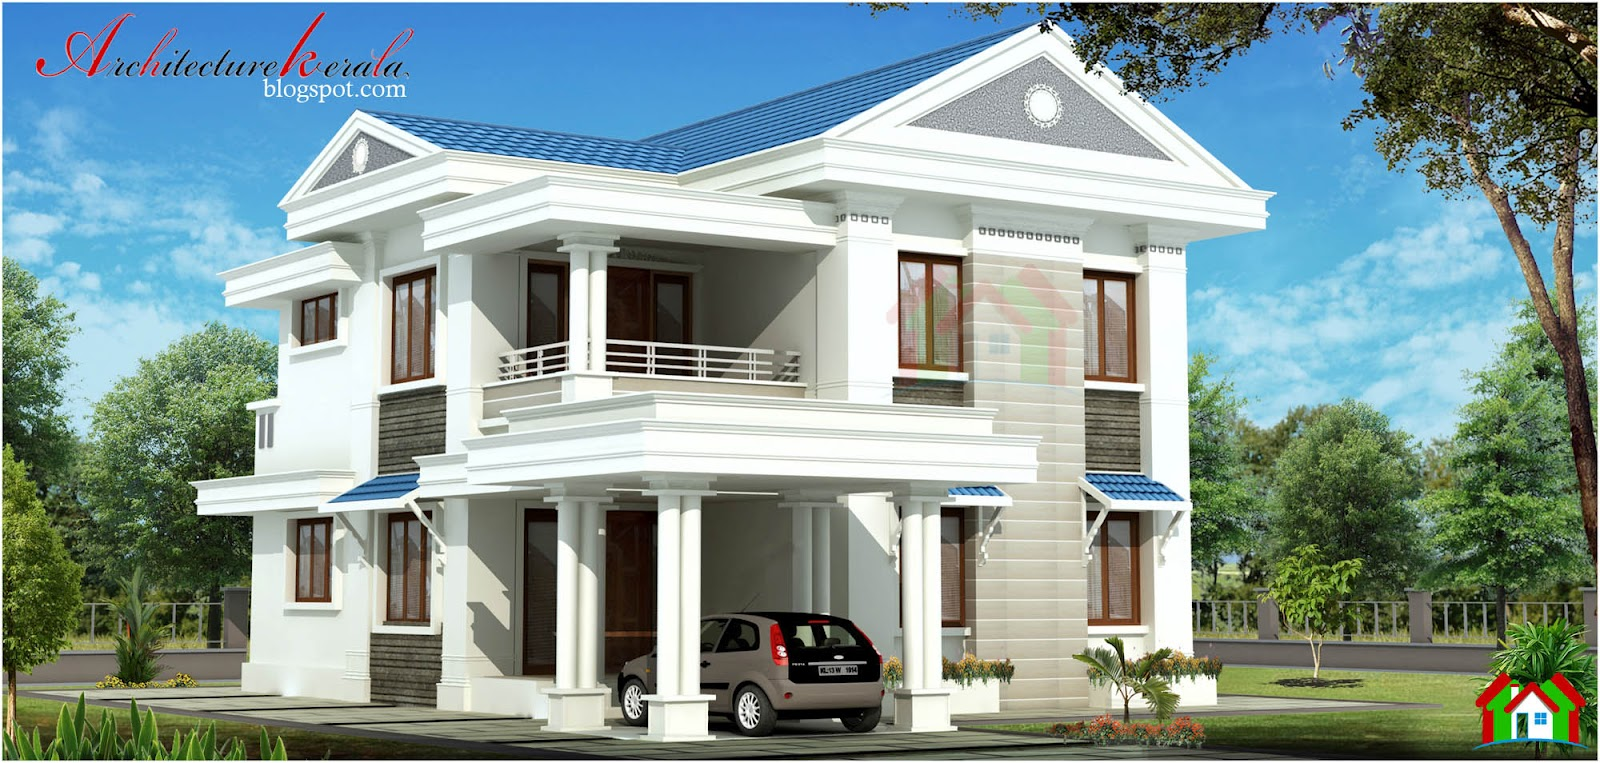 1500 square feet 3 bhk kerala house architecture kerala for 1500 square foot house